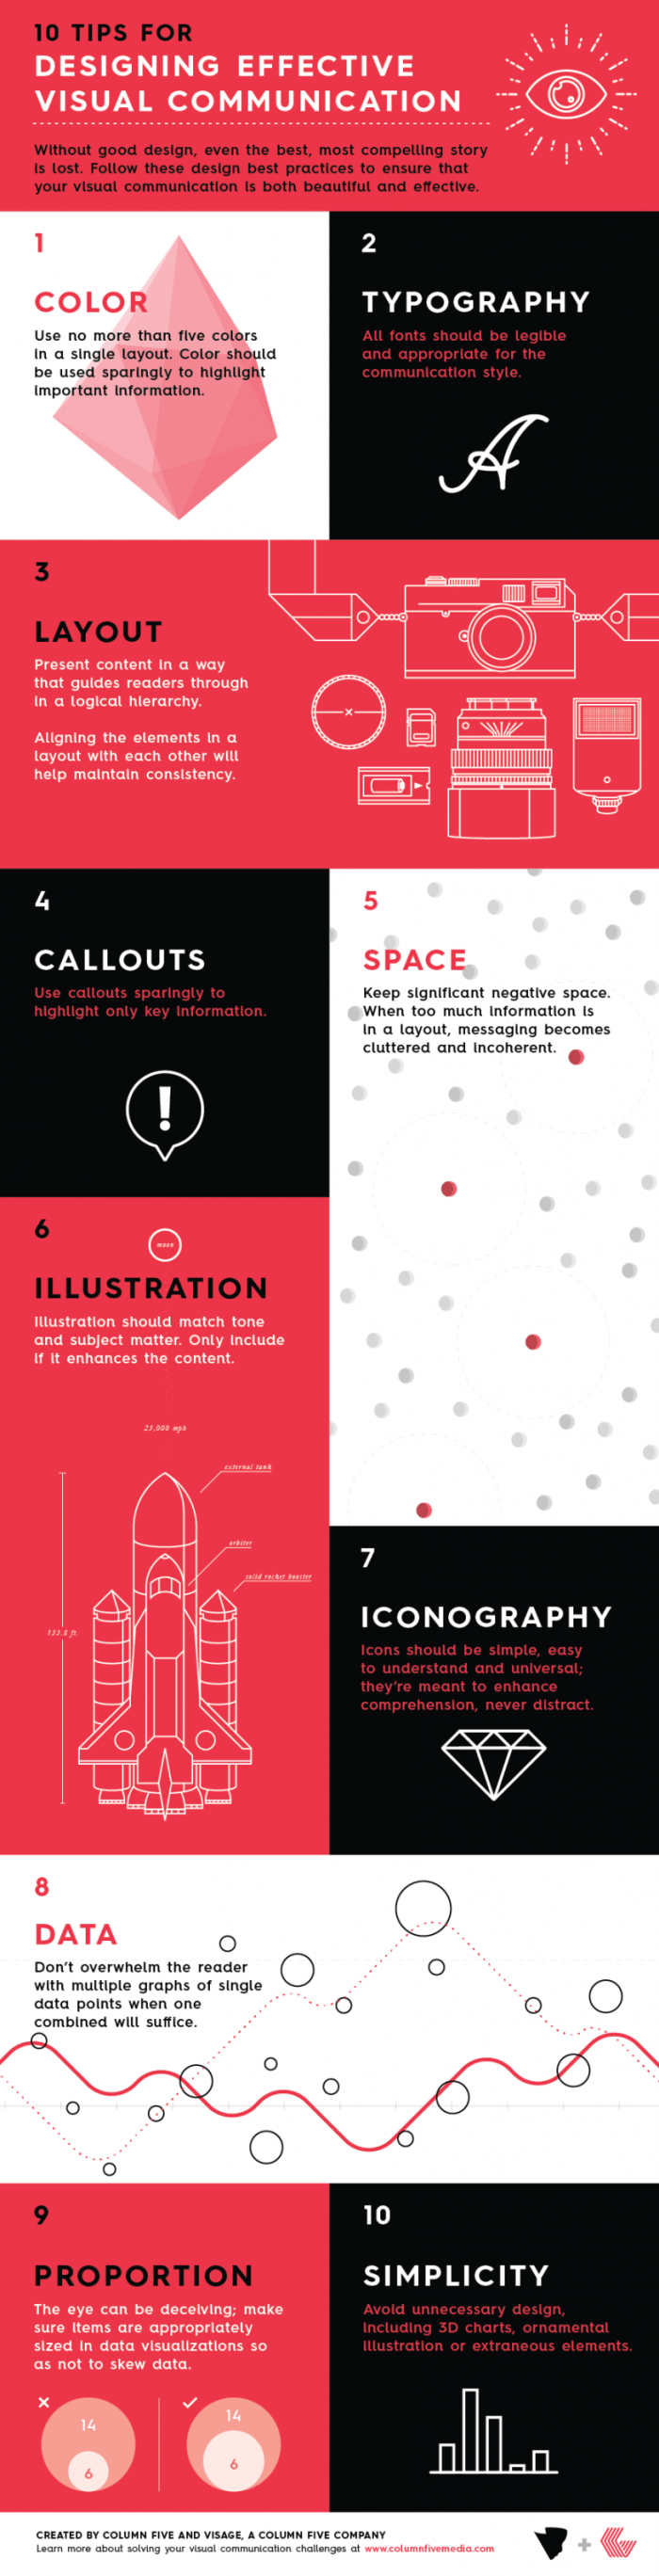 10 Tips for Good Design Infographic